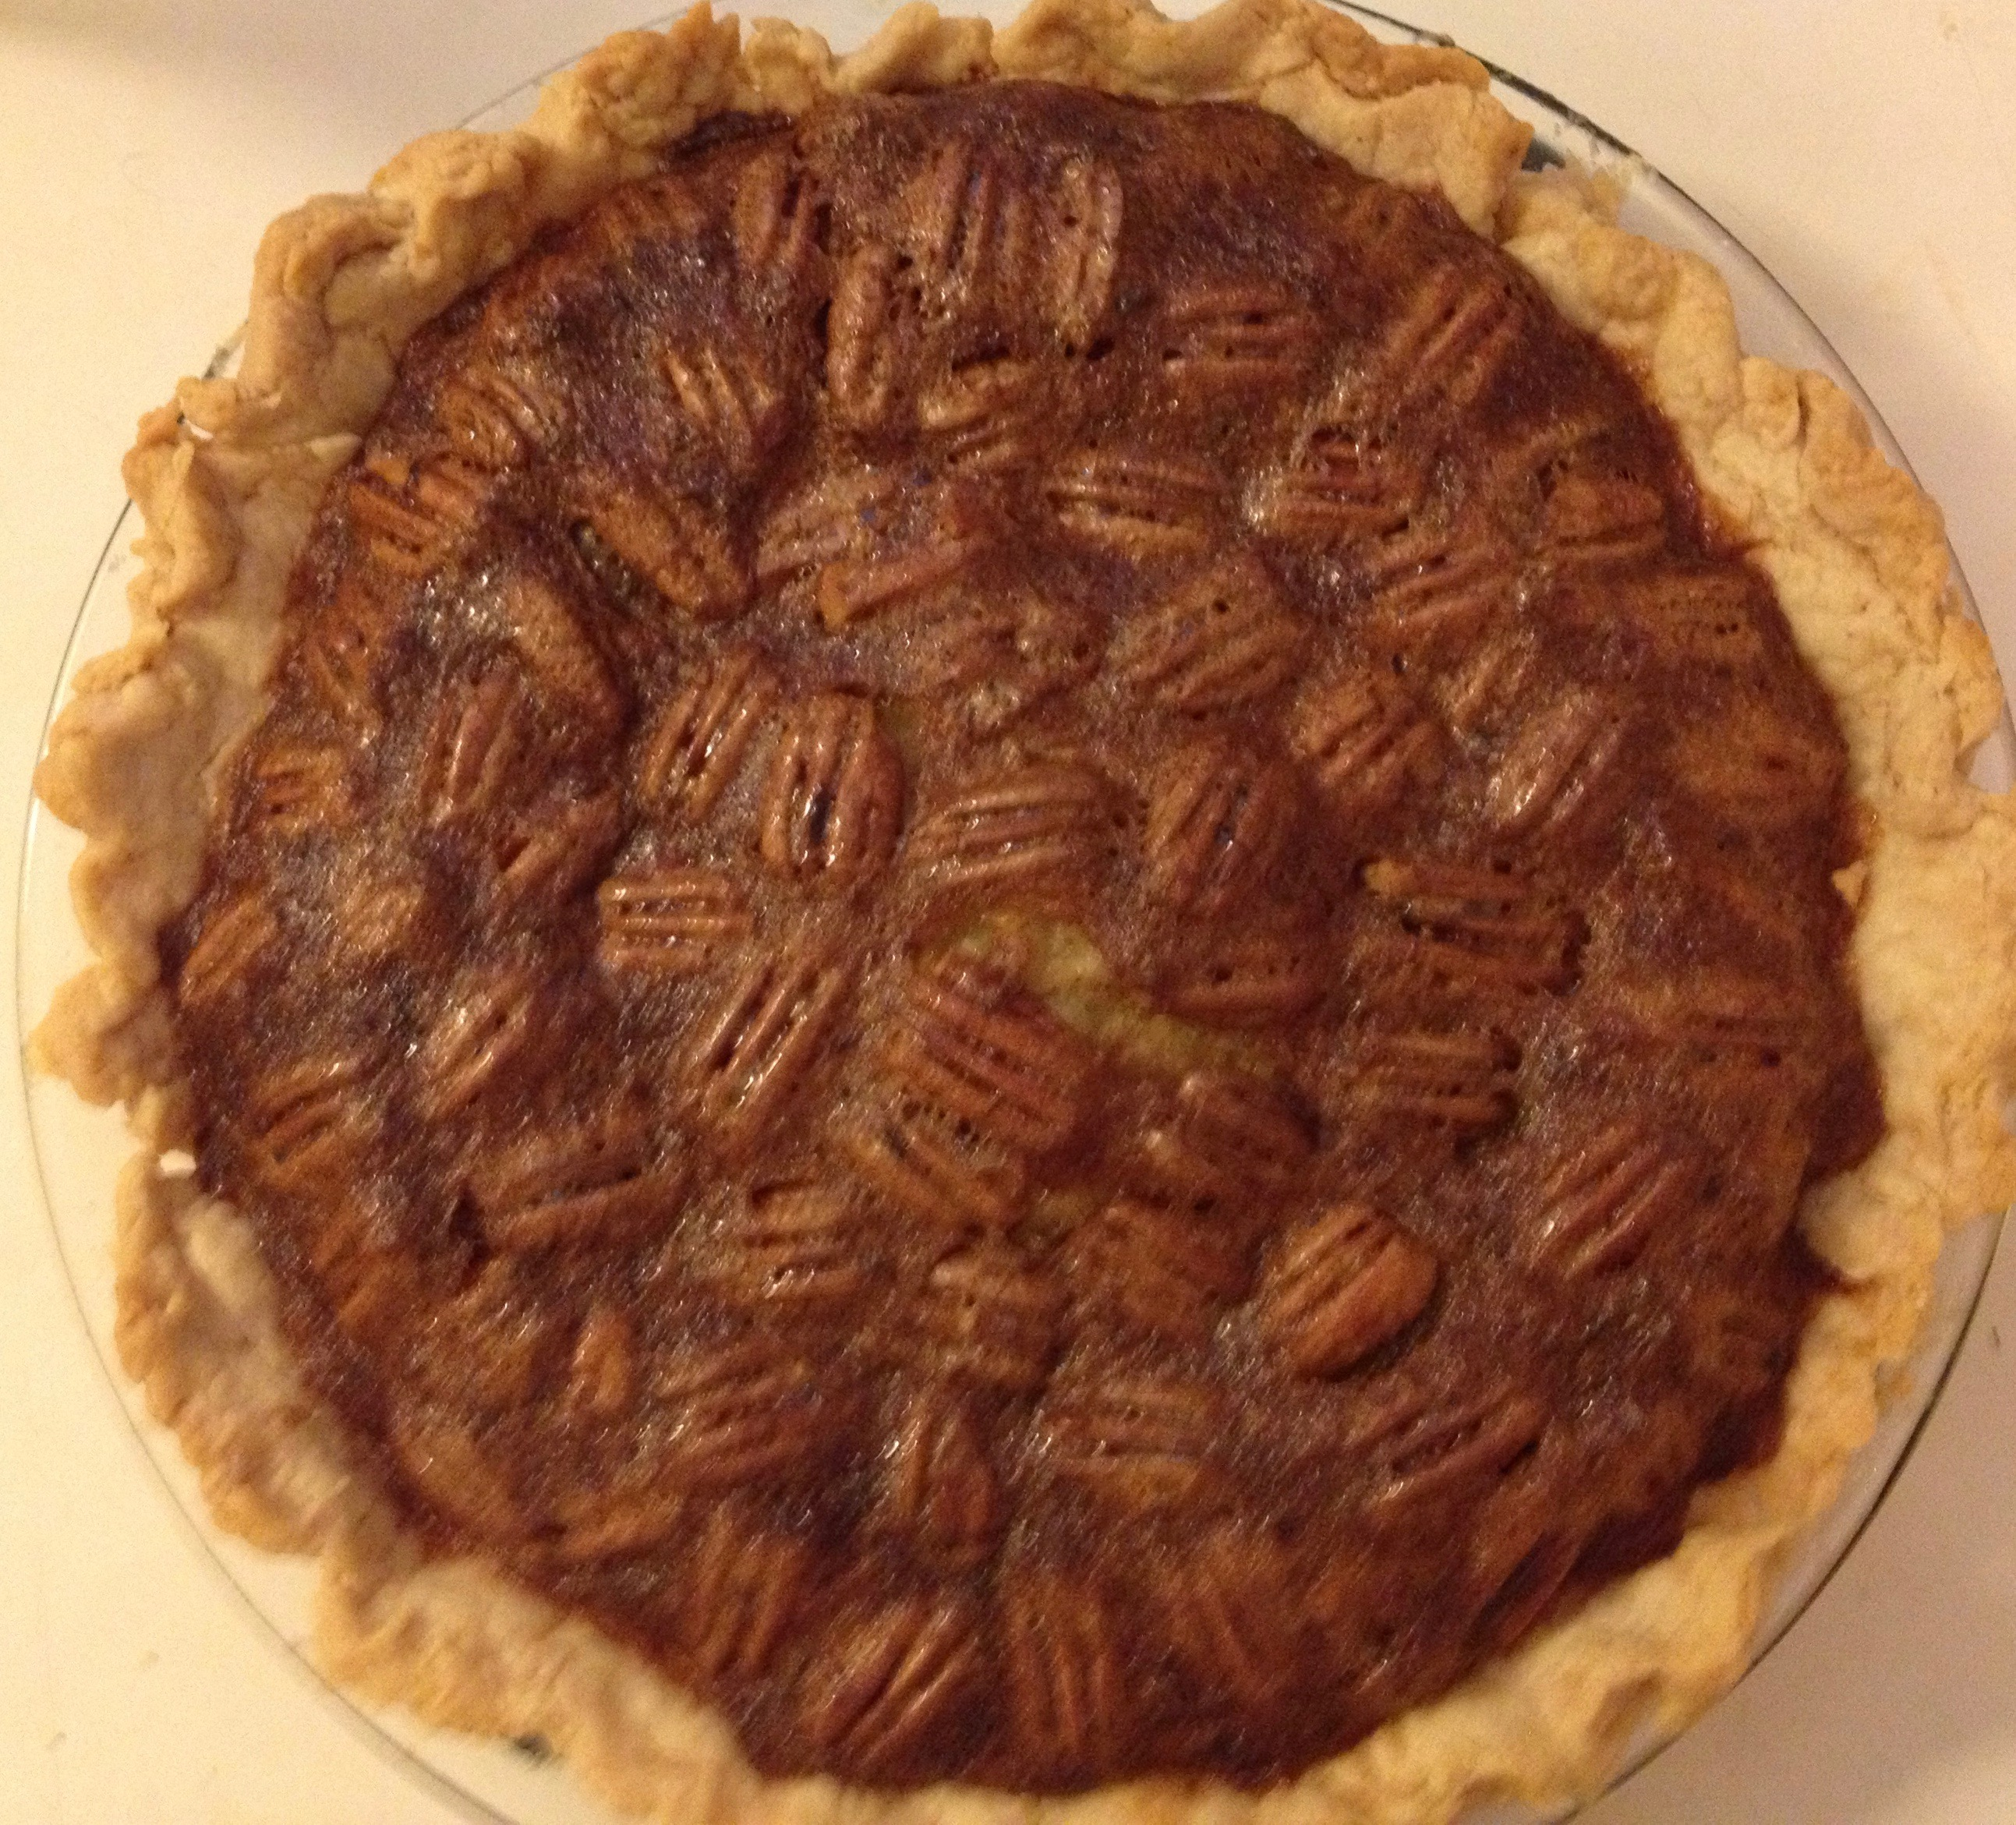 Pecan Pie Past and Present